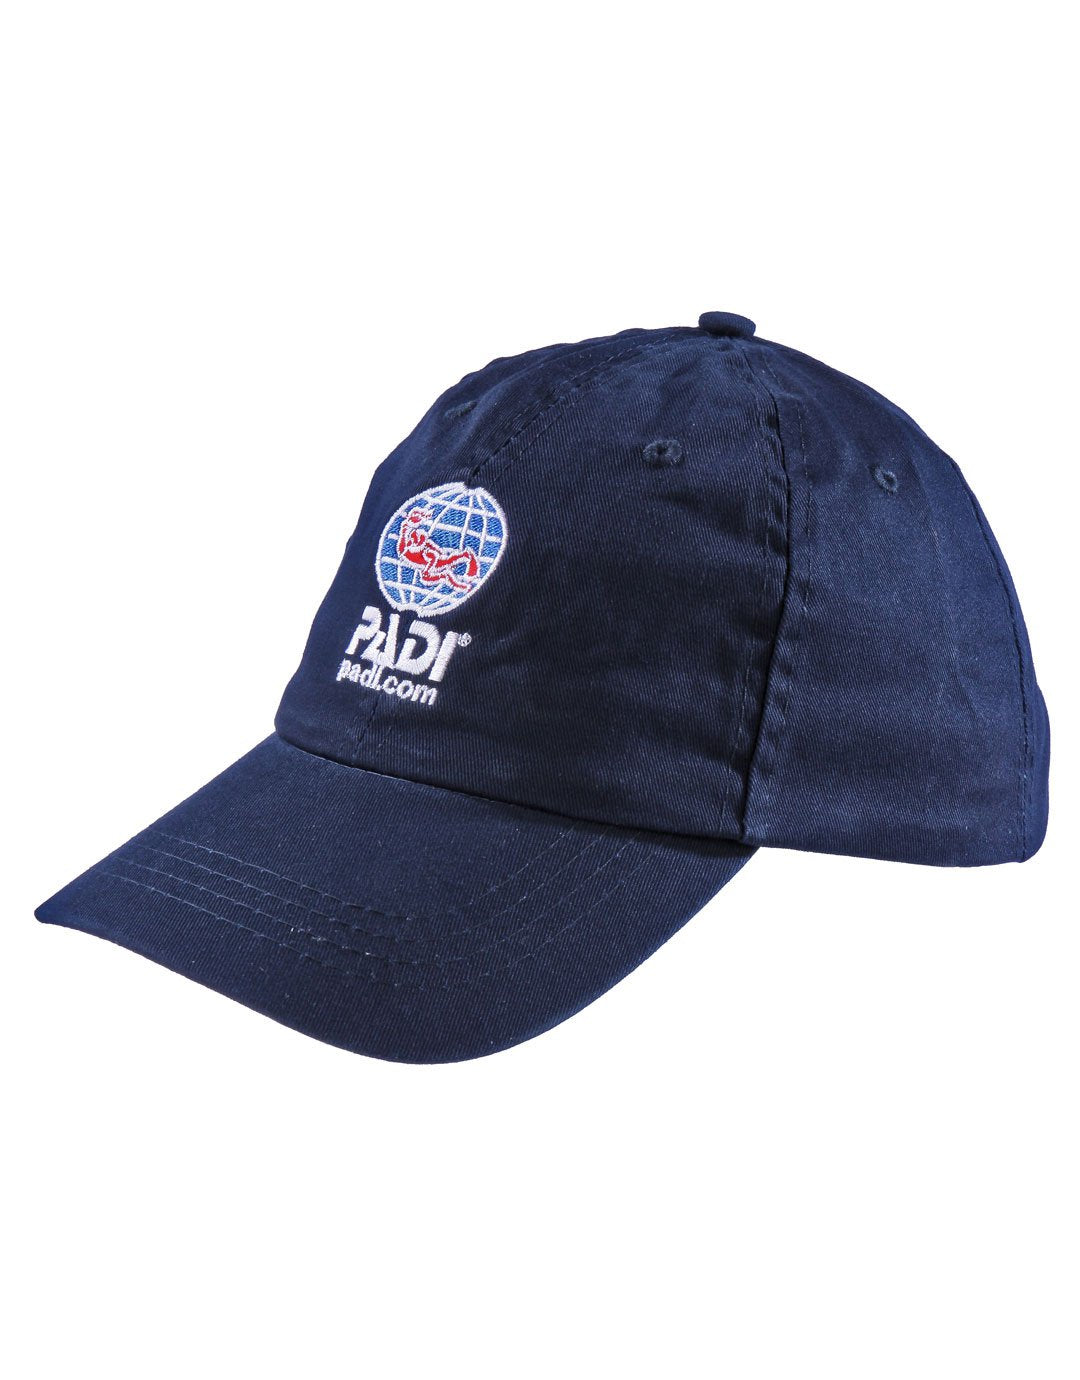 Image of PADI Instructor Hat